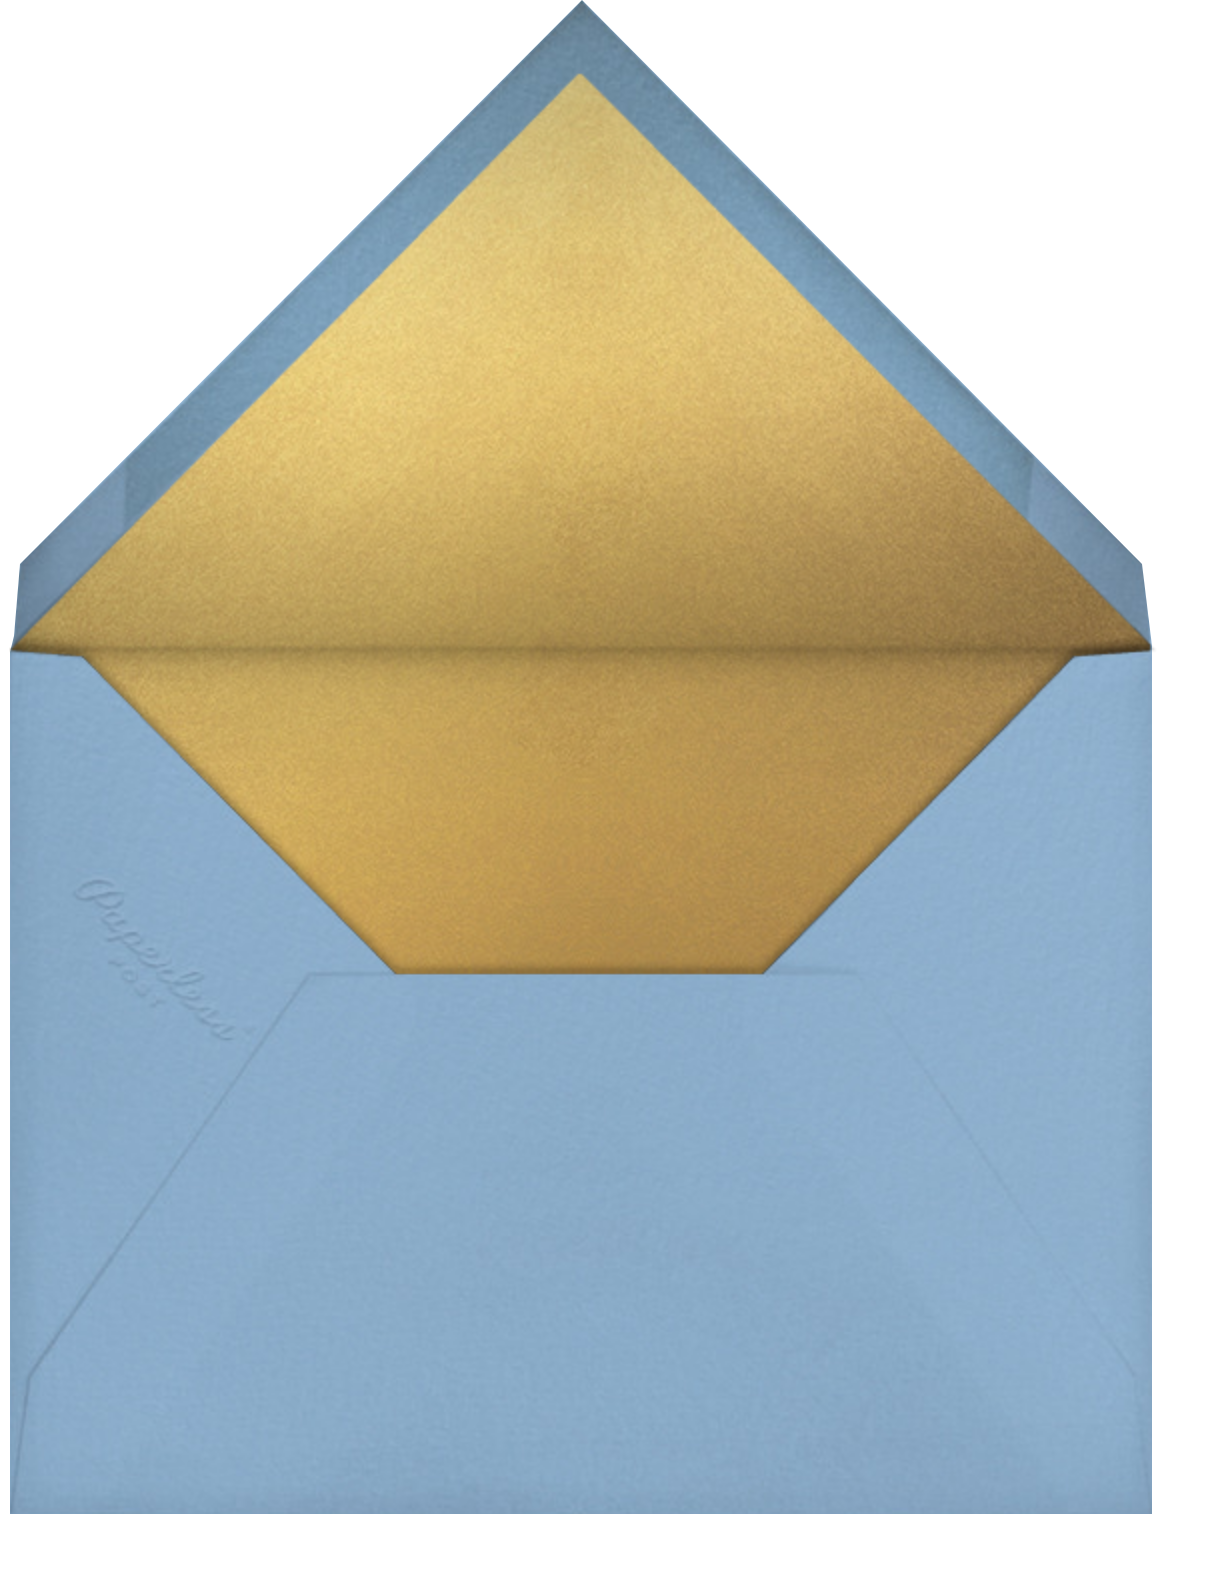 Concentrics - Blue - Paperless Post - Business holiday cards - envelope back